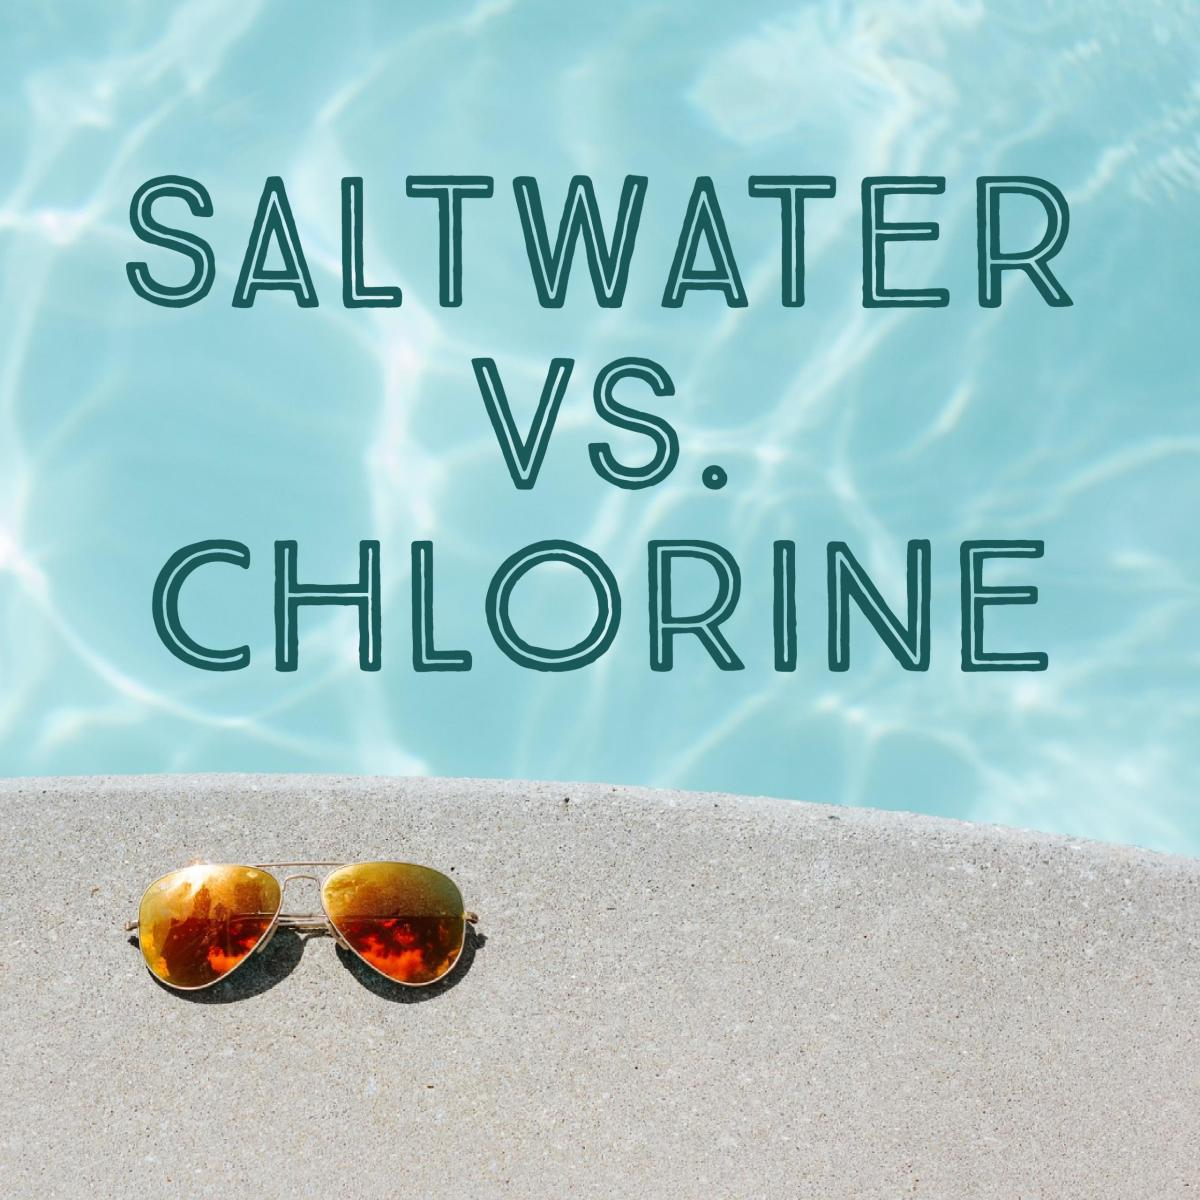 Saltwater vs. Chlorine-Based Swimming Pools: Which Is Better?